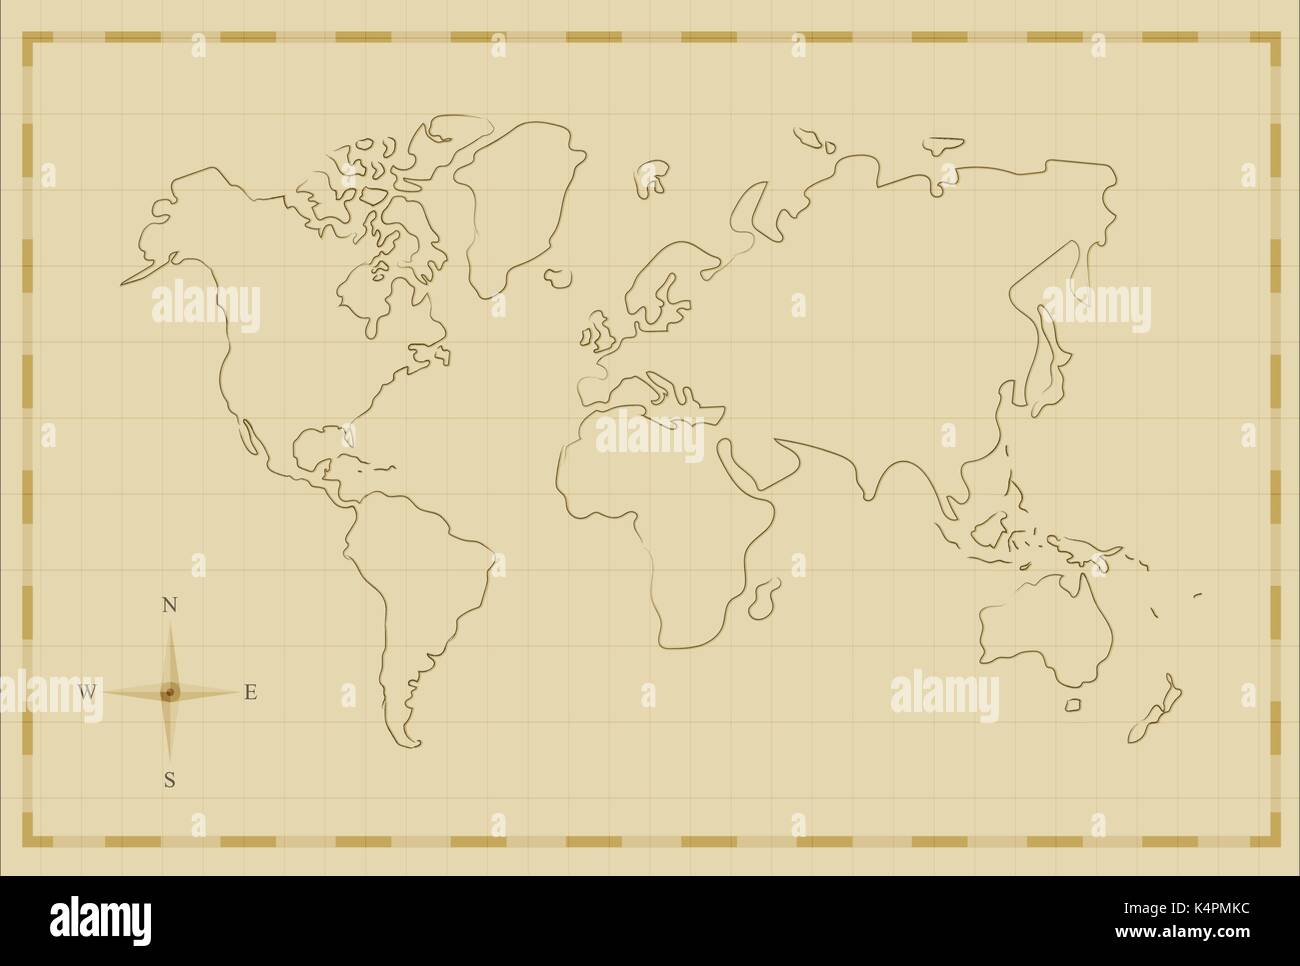 Vintage world map illustration template in old hand drawn style vintage world map illustration template in old hand drawn style antique pirate map concept eps10 vector gumiabroncs Image collections